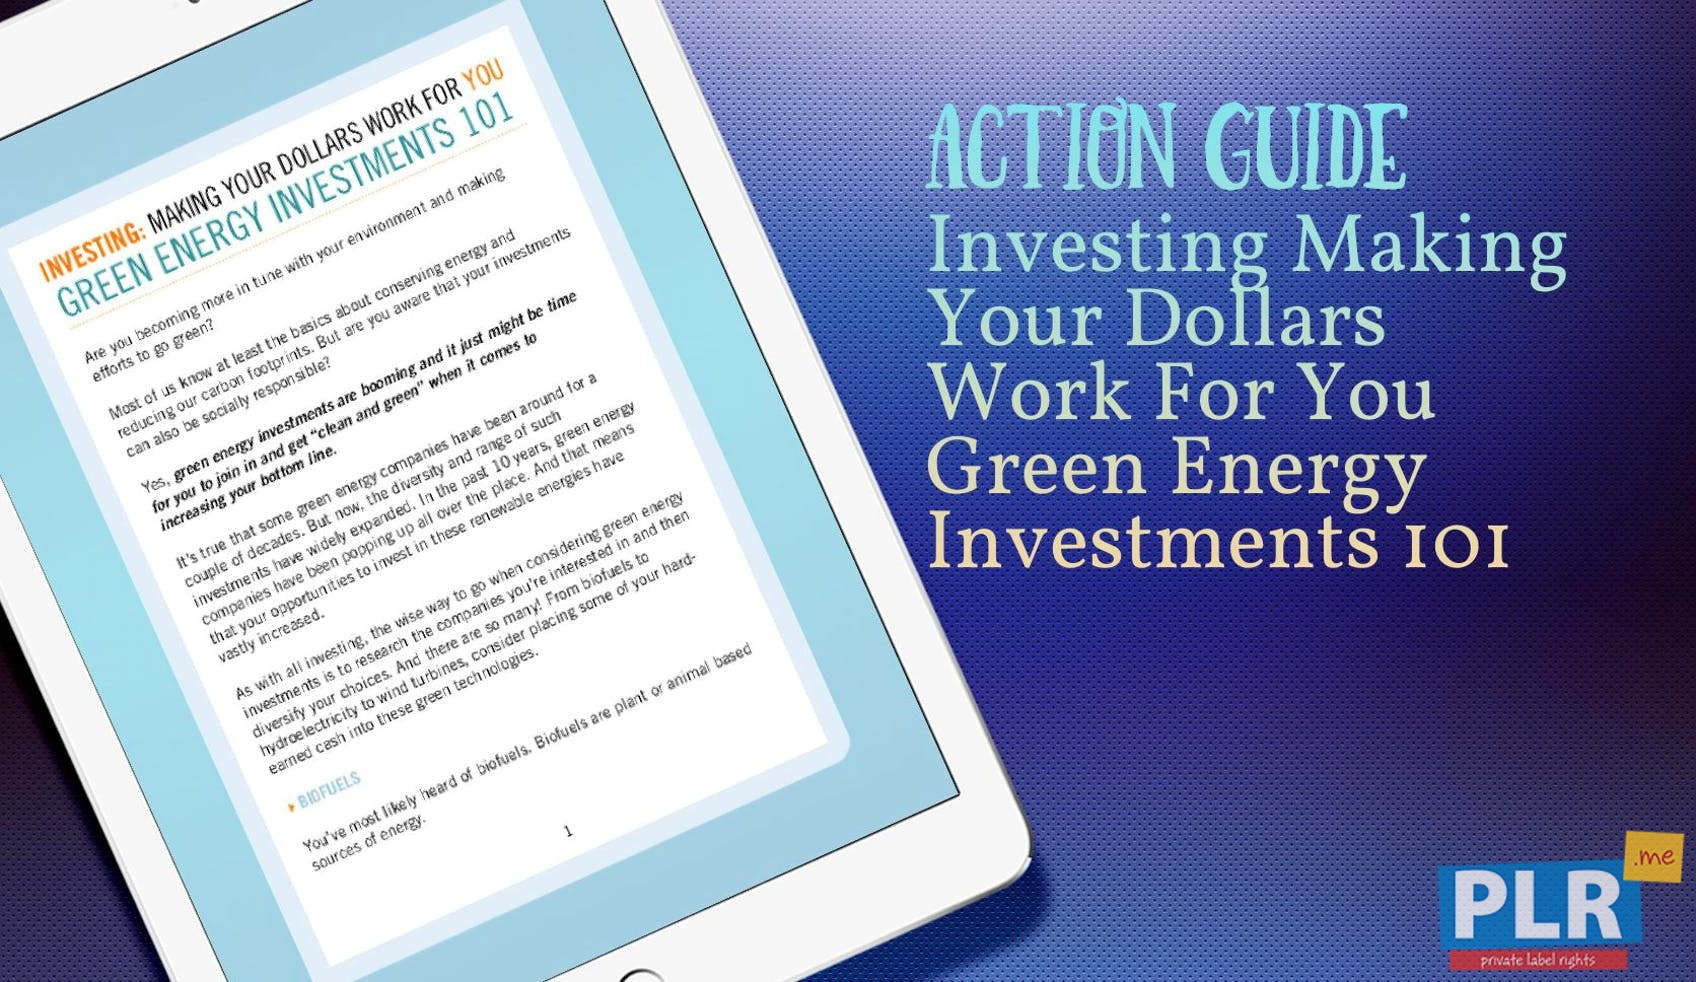 Investing Making Your Dollars Work For You Green Energy Investments 101